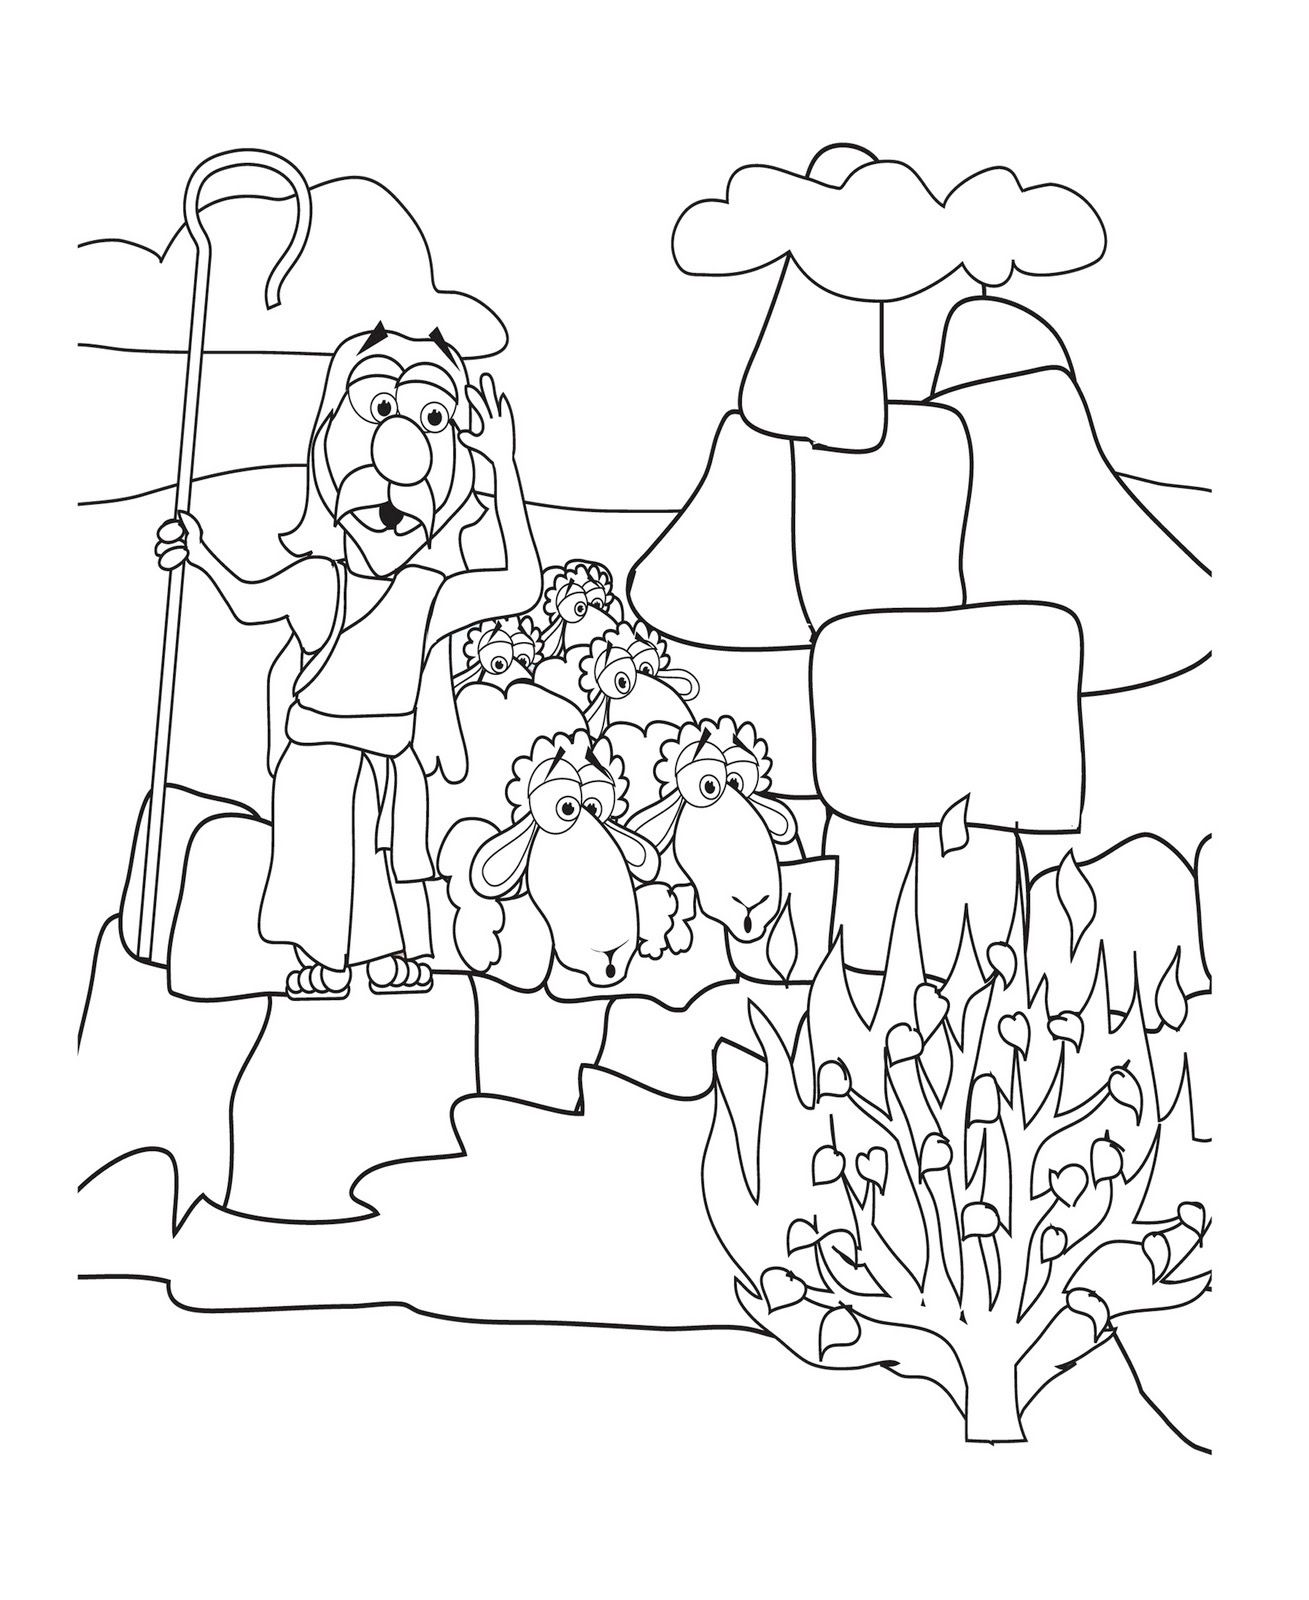 Moses coloring page   Sunday school   Pinterest